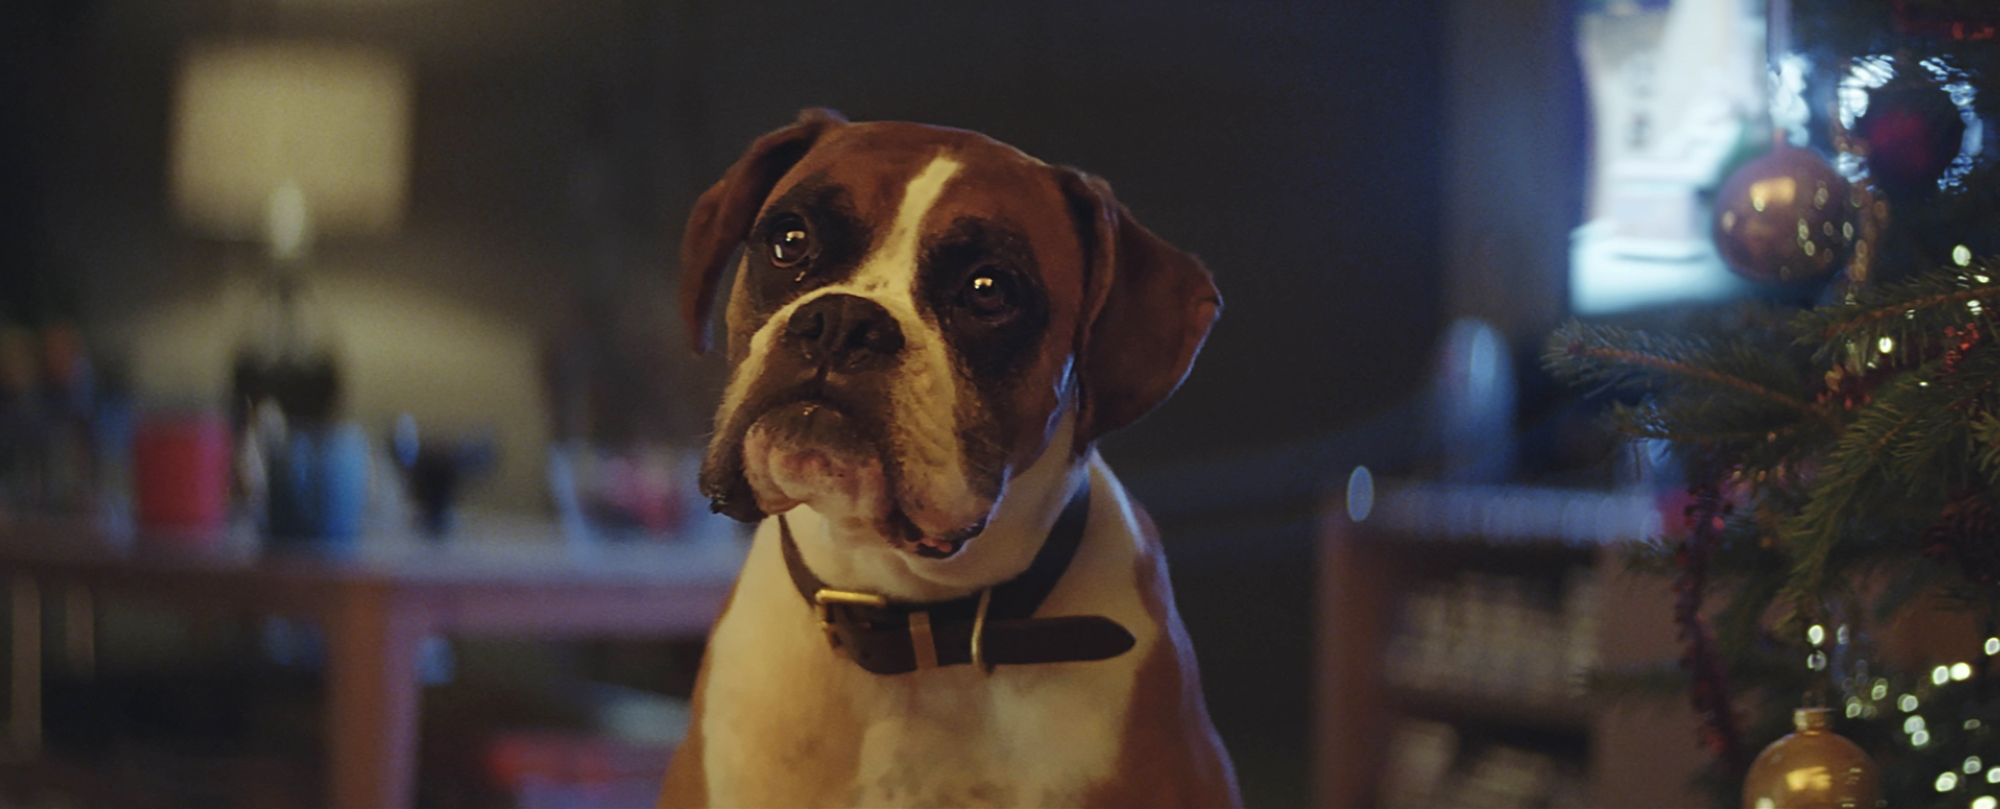 John Lewis Boosts 'Buster' Christmas Campaign with Snapchat Filter